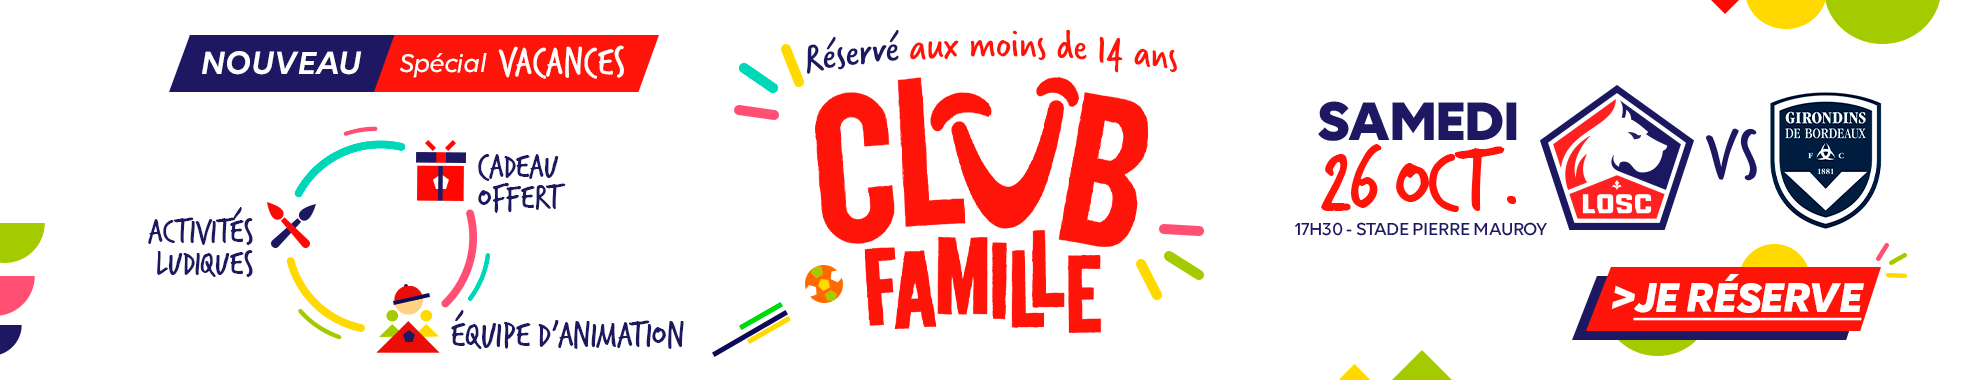 CARROUSEL_BILLETTERIE_[ClubFamille]_1980x380-v2_0.png